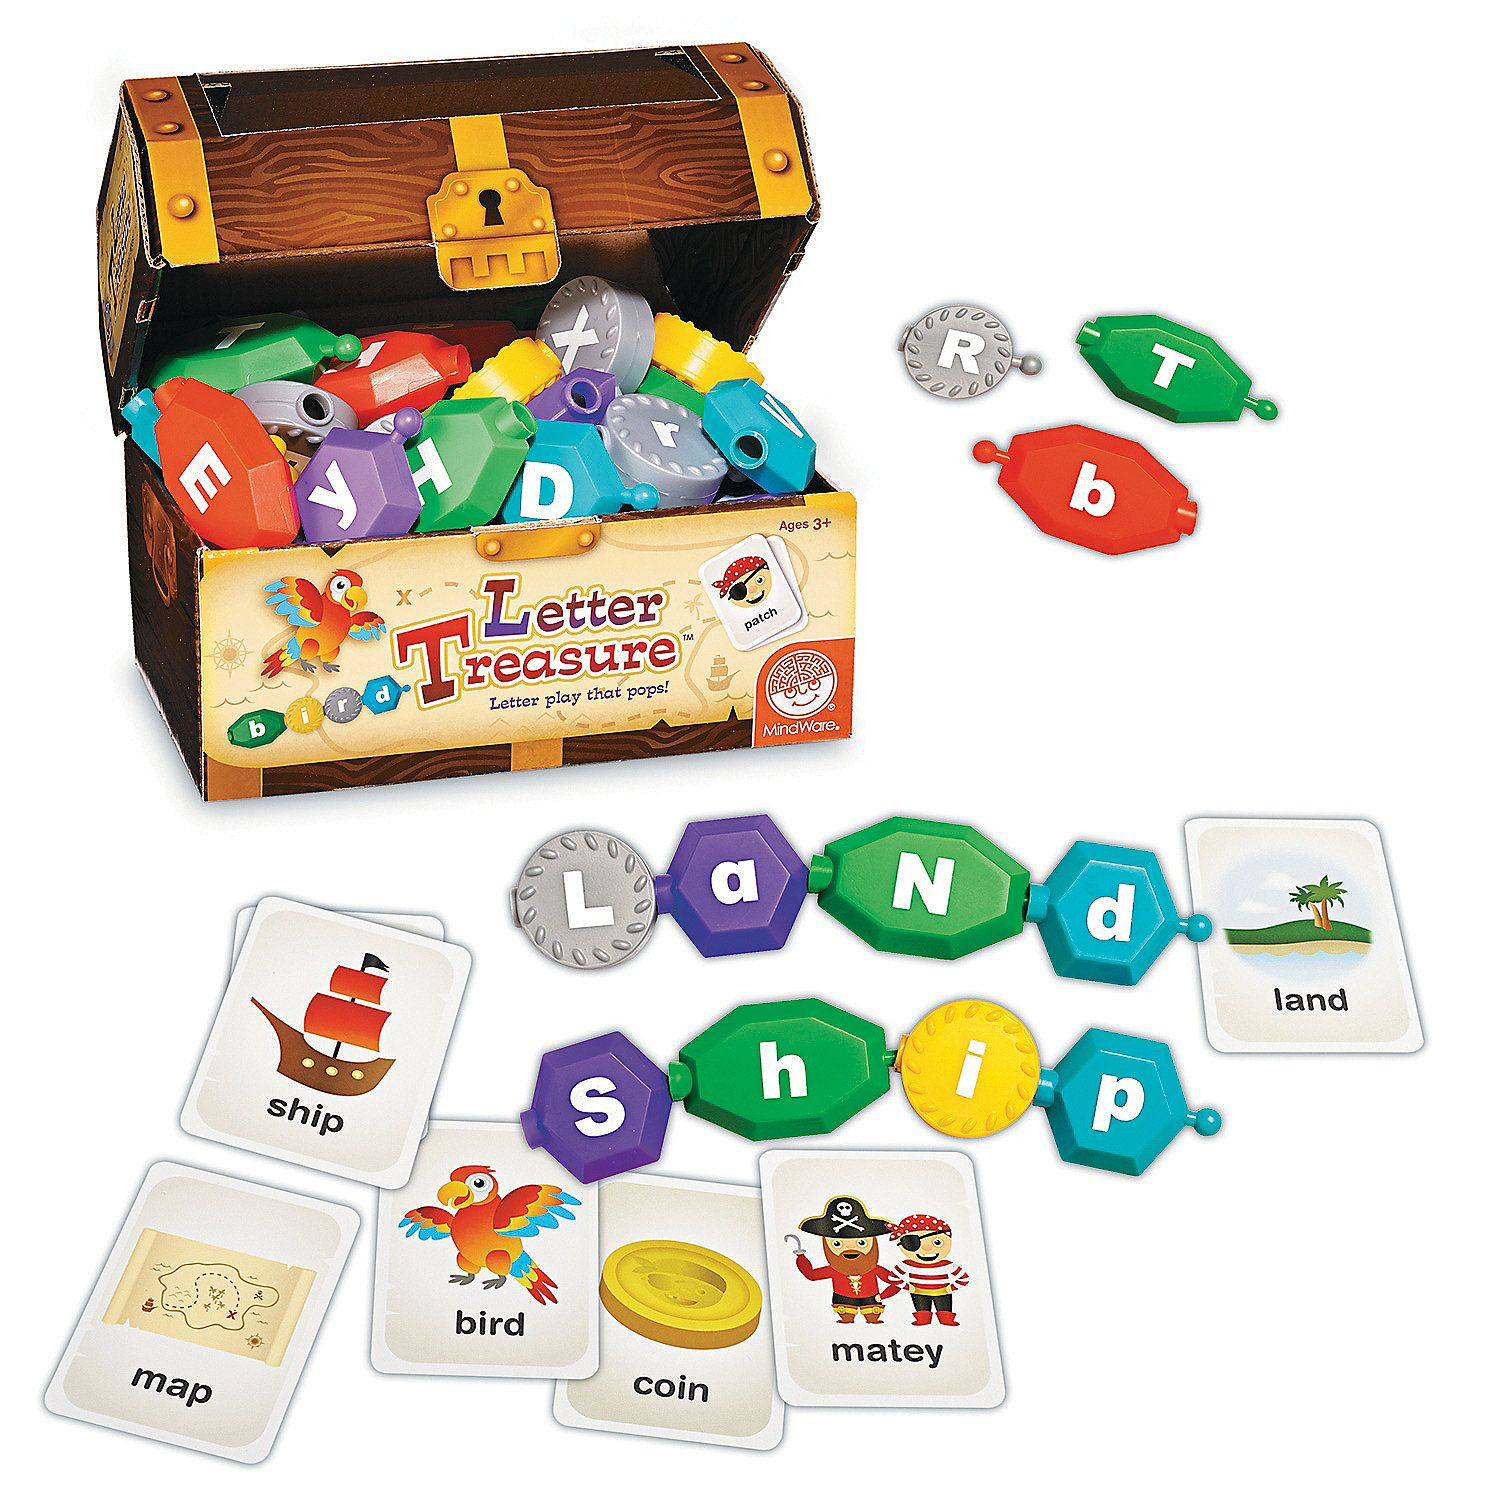 For Evie Letter Treasure - MindWare.com | AllI want for ...